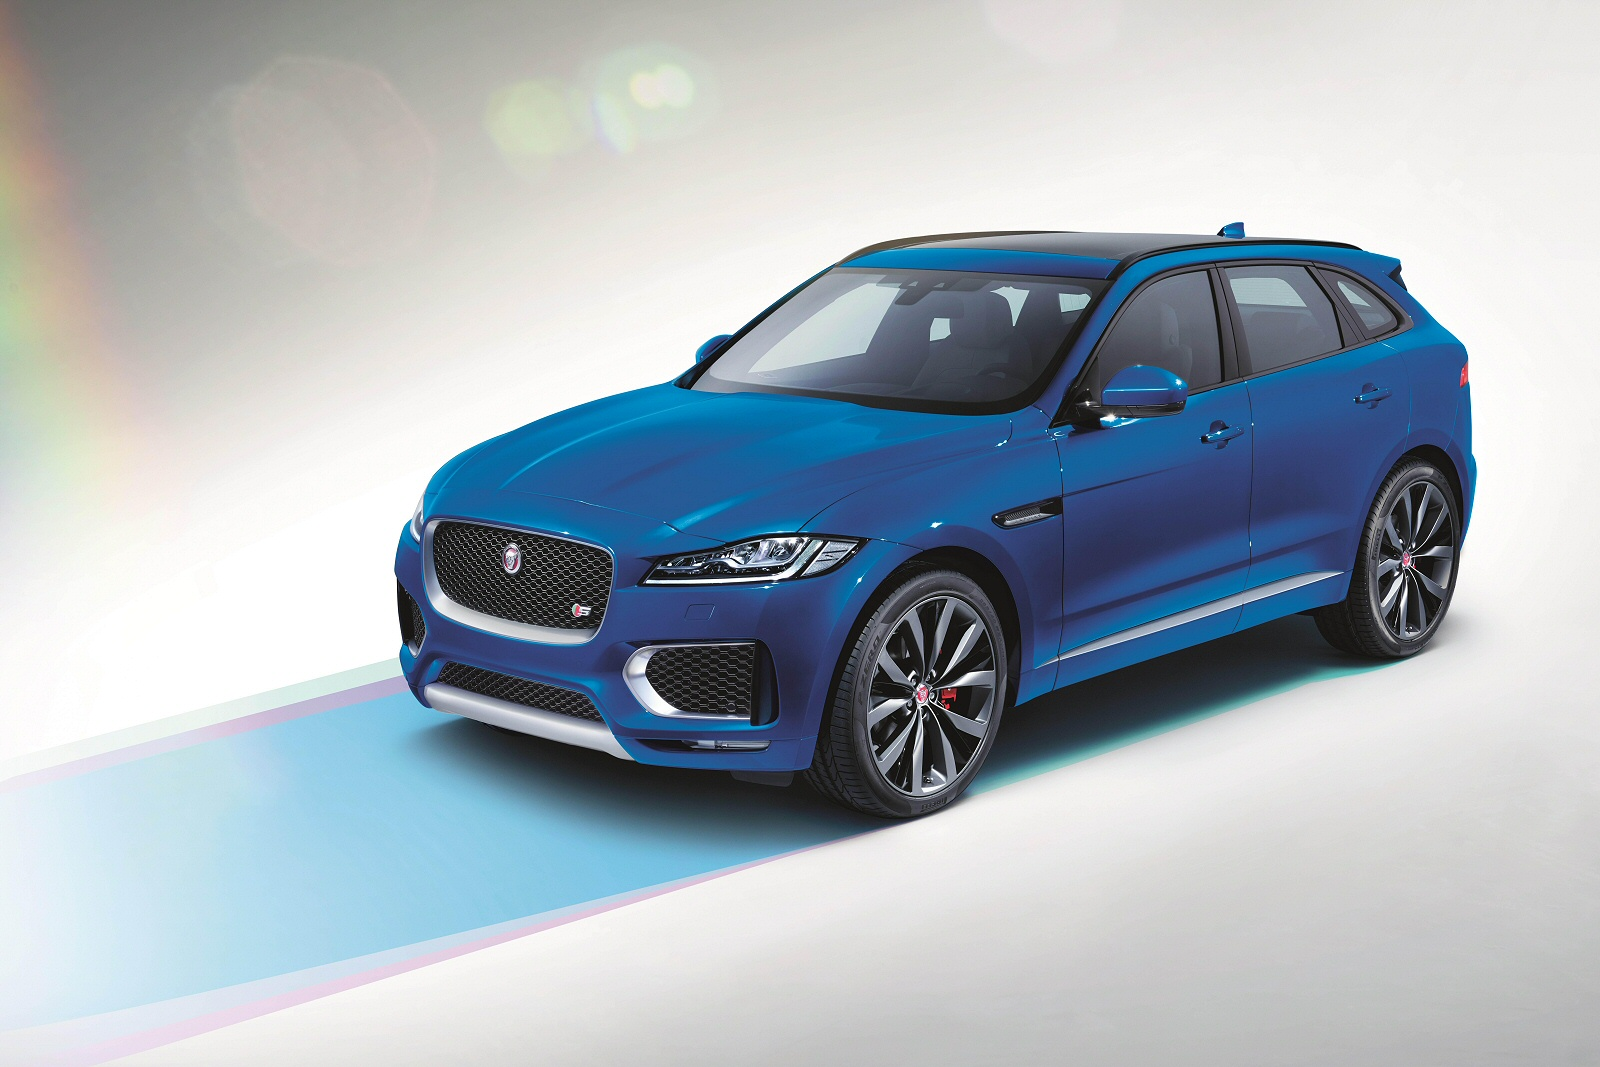 Upping The F Pace Jaguar F Pace S 3 0 Litre Diesel Independent New Review Ref 1291 11263